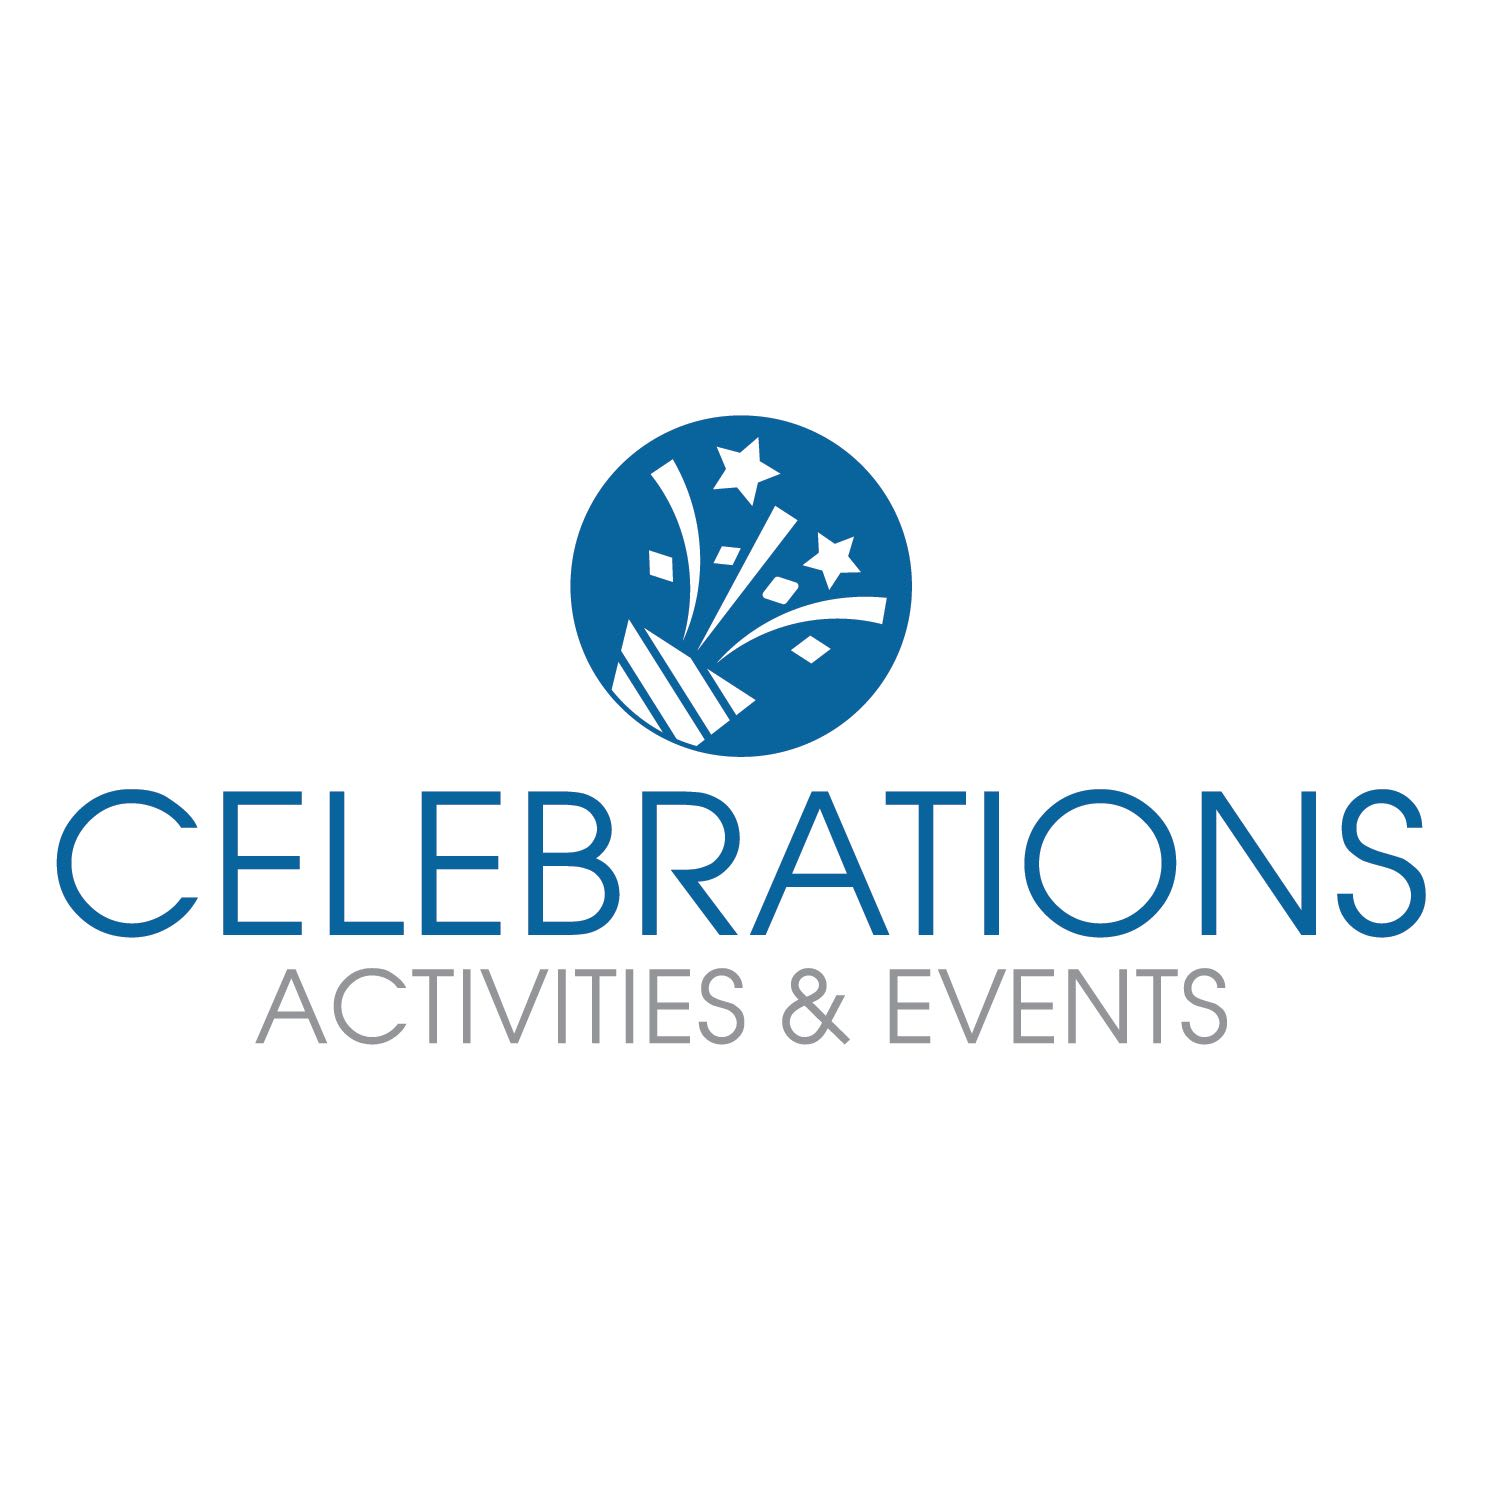 Celebrations program at Discovery Commons